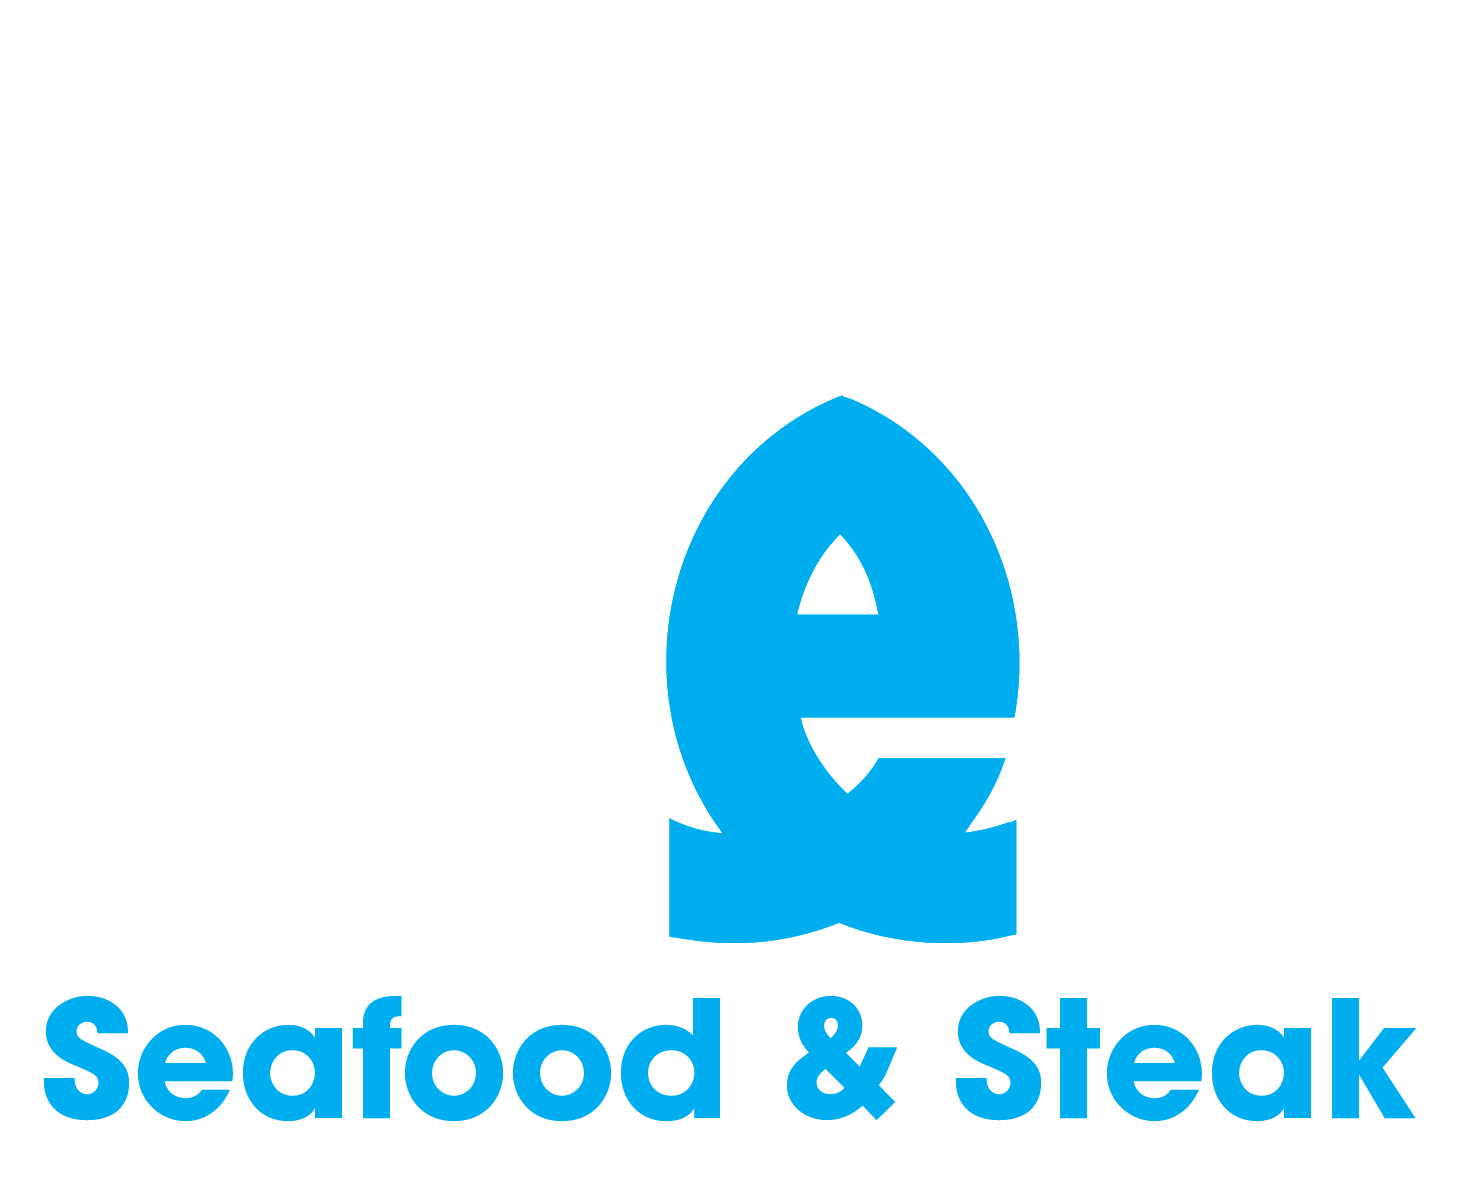 The Reef Seafood & Steak Restaurant